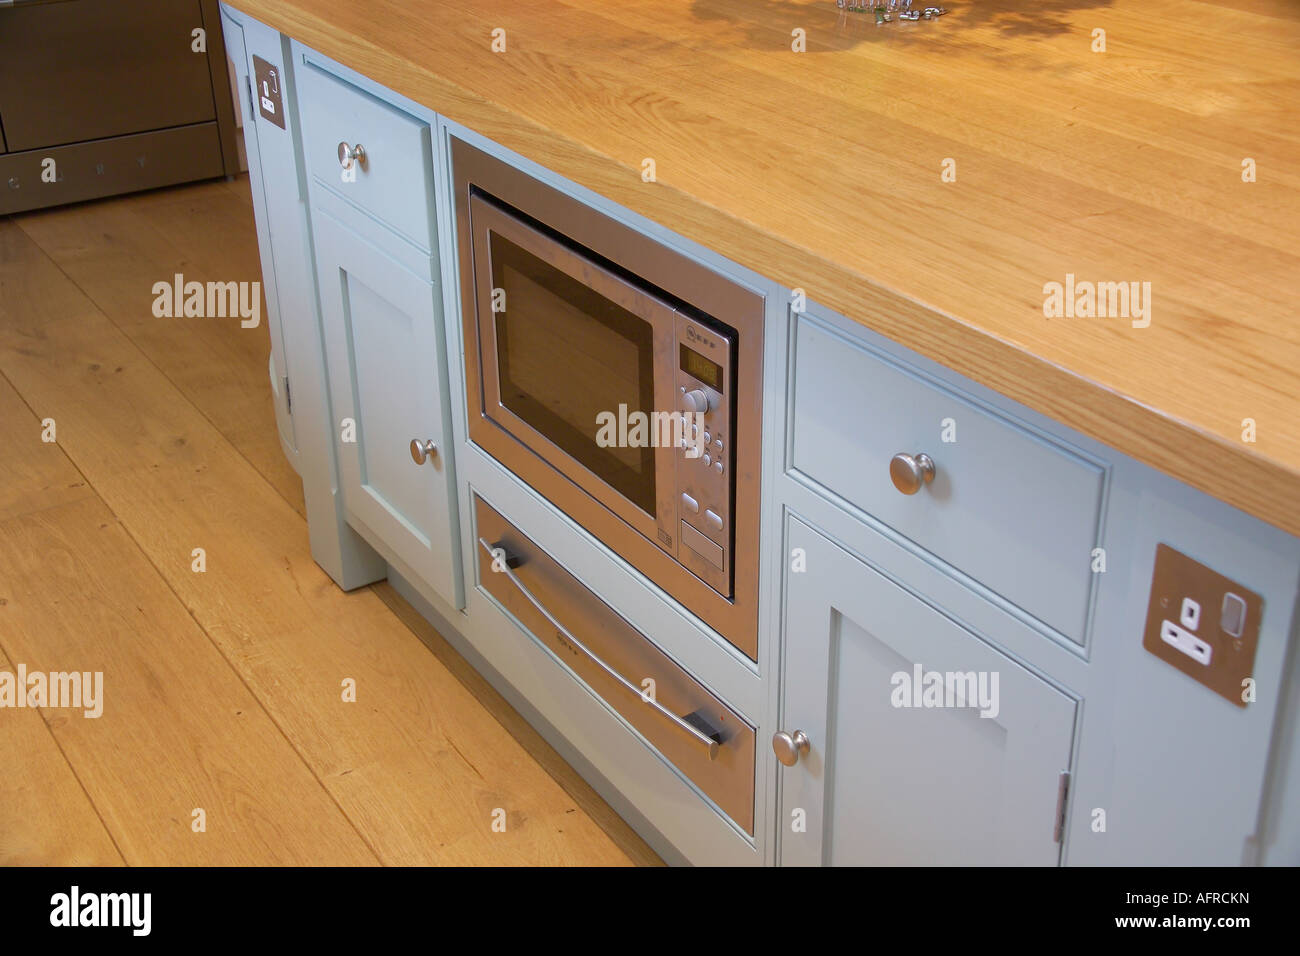 Countertop Warming Drawer Close Up Of Kitchen Unit With Built In Microwave Oven And